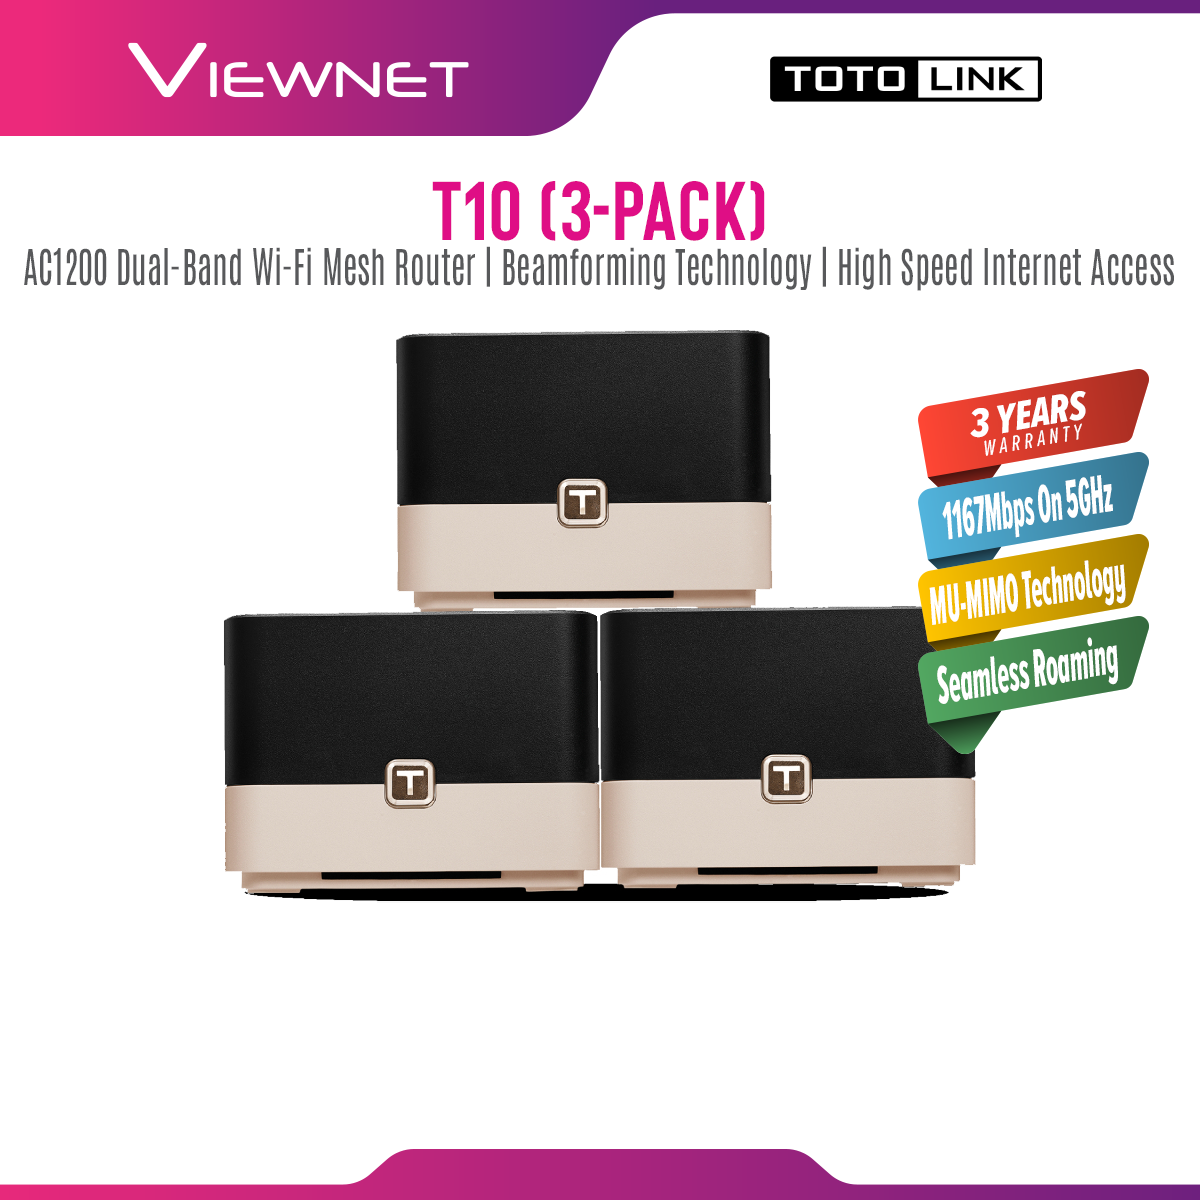 TOTOLINK T10 Gigabit AC1200 Whole Home Mesh WiFi System Router (3 Pack) - Dual Band, MU-MIMO Technology, Seamless Roaming, Up to 4,500 sq. ft. Coverage , Support TM Uniif , Time Fibre , Maxis Fibre